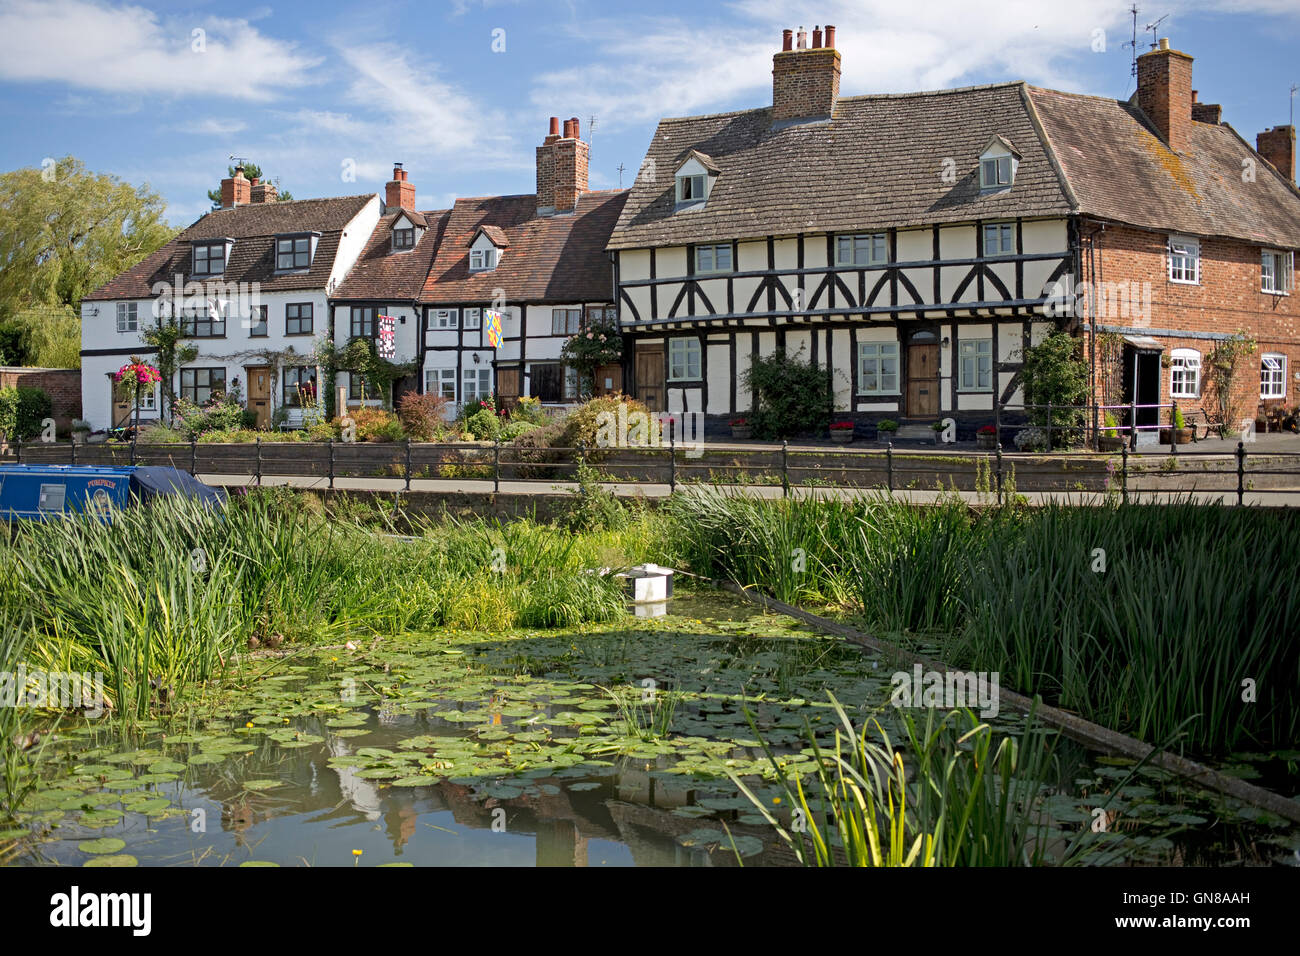 16th century black and white half timbered riverside cottages Mill Street Tewkesbury UK - Stock Image